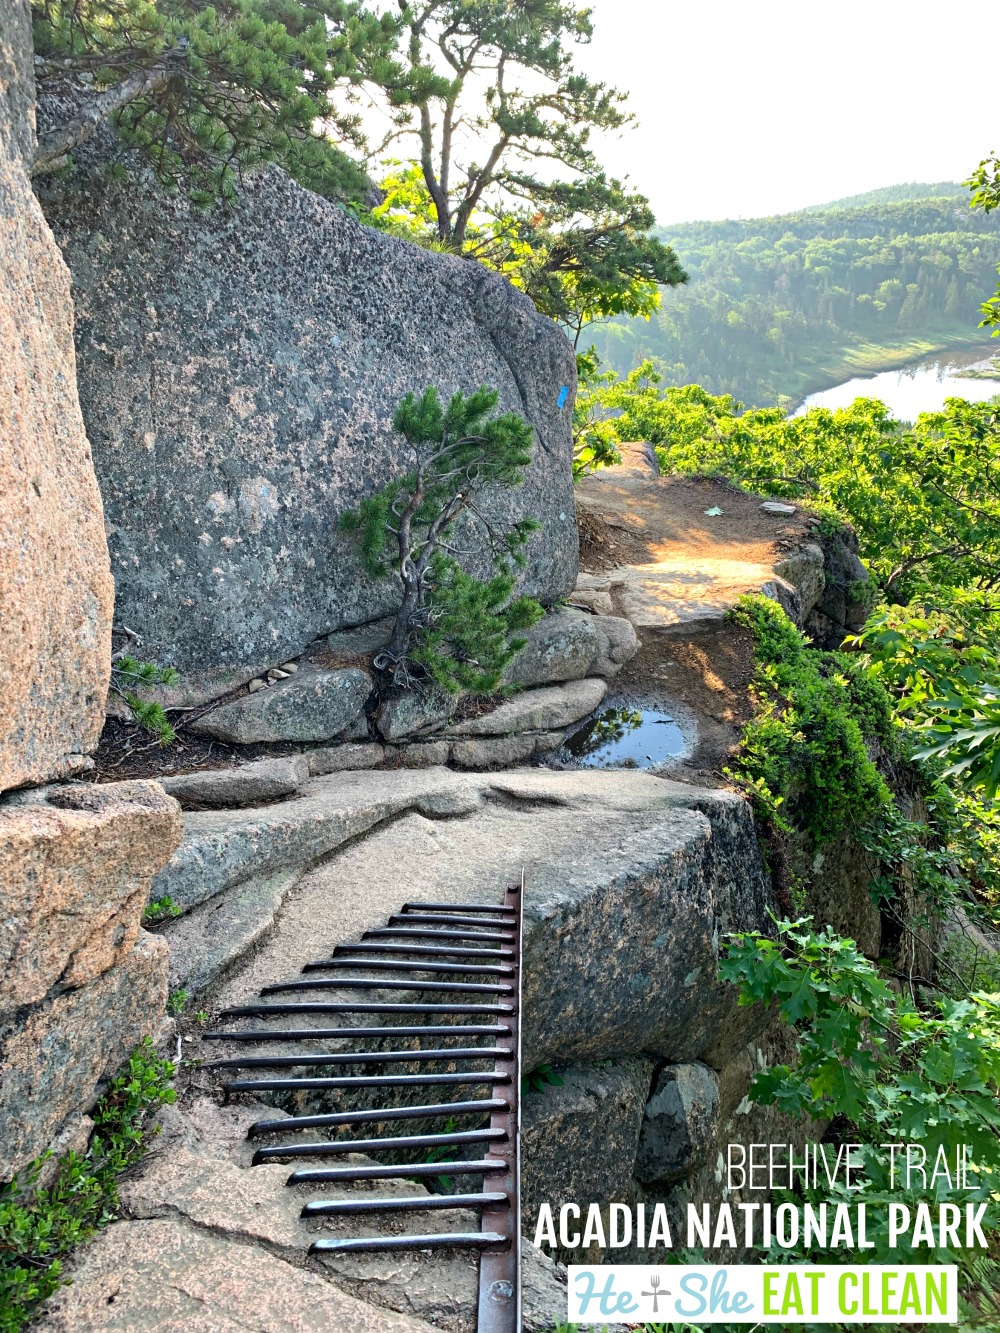 landscape photo of the Beehive Trail in Acadia National Park with a trail and ocean in the background